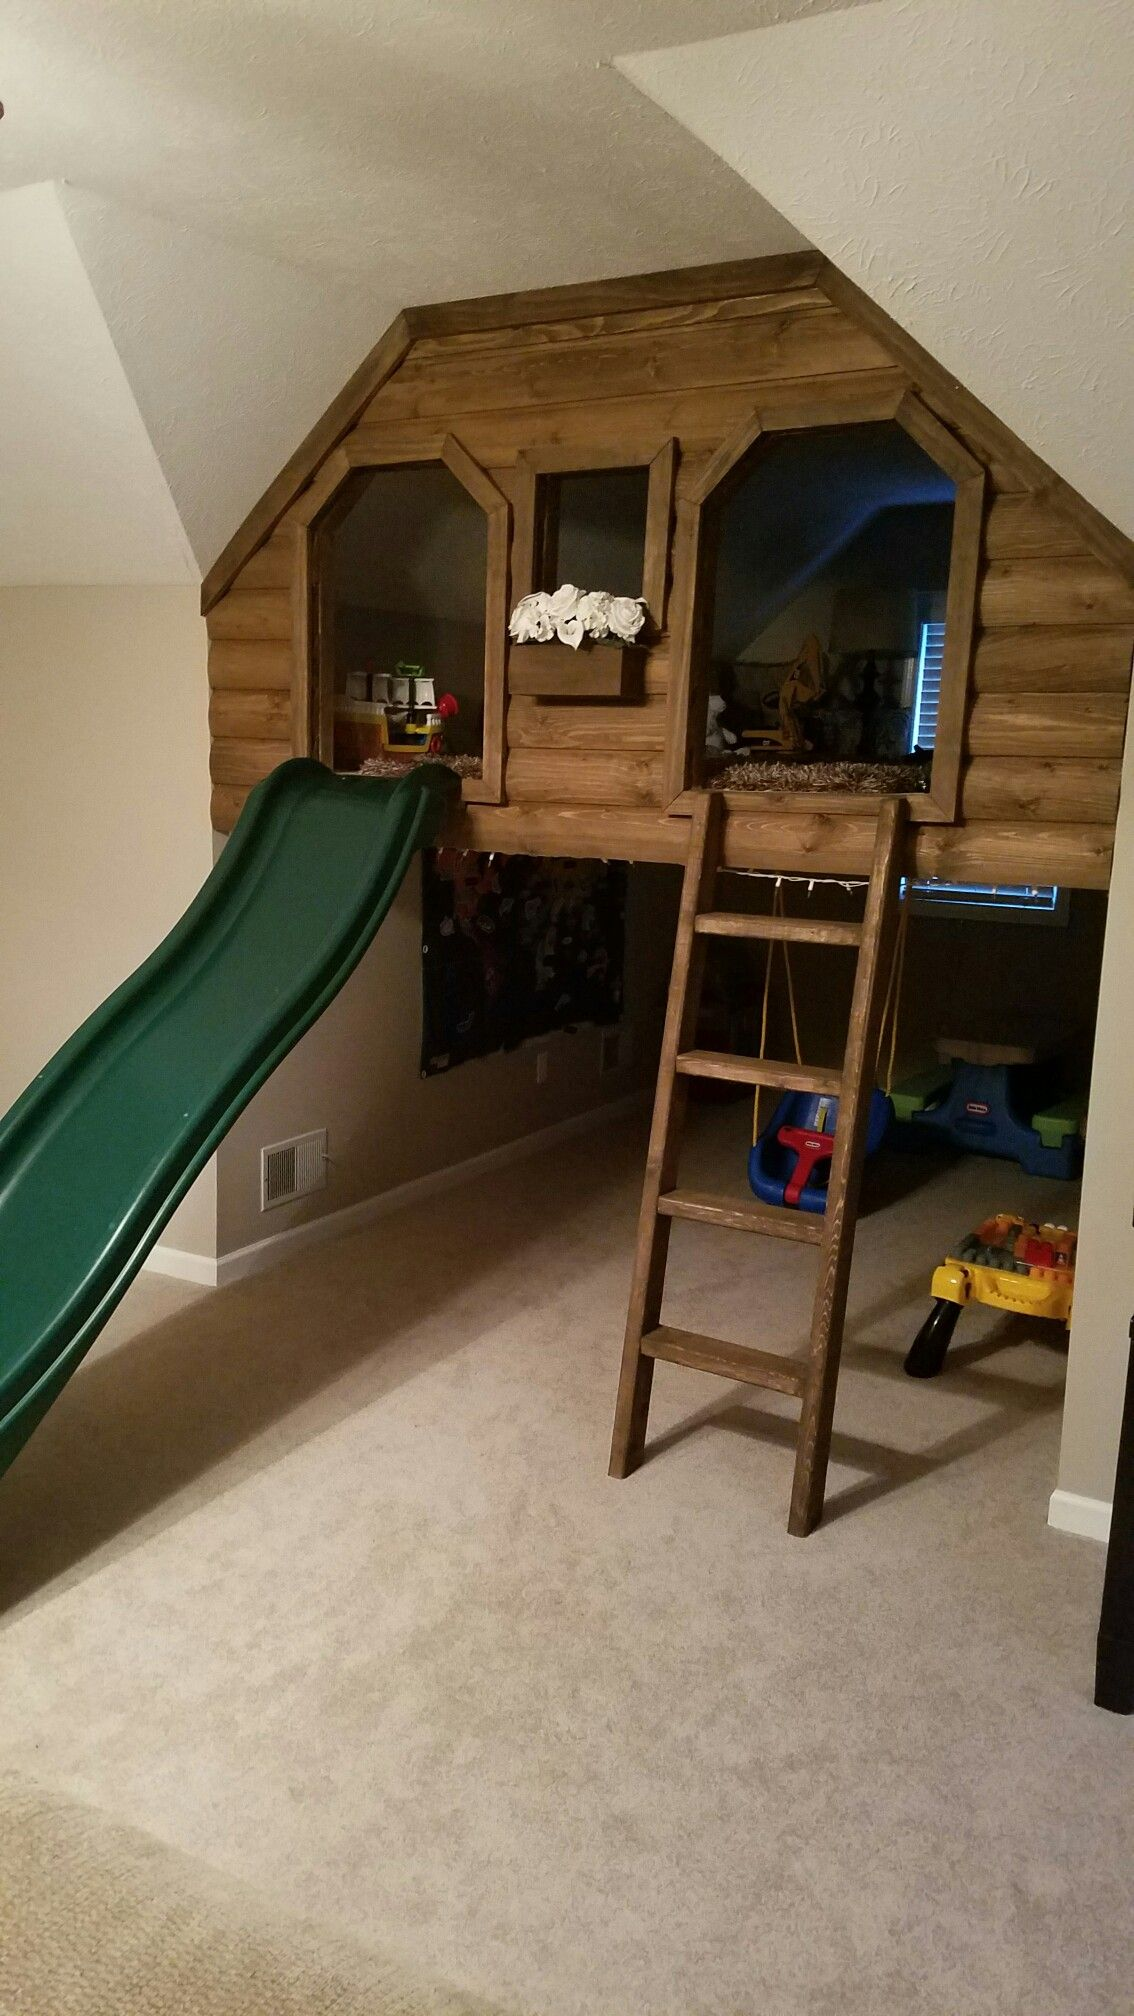 Indoor Kids Log Cabin Playhouse With Slide Indoor Kids Log Cabin